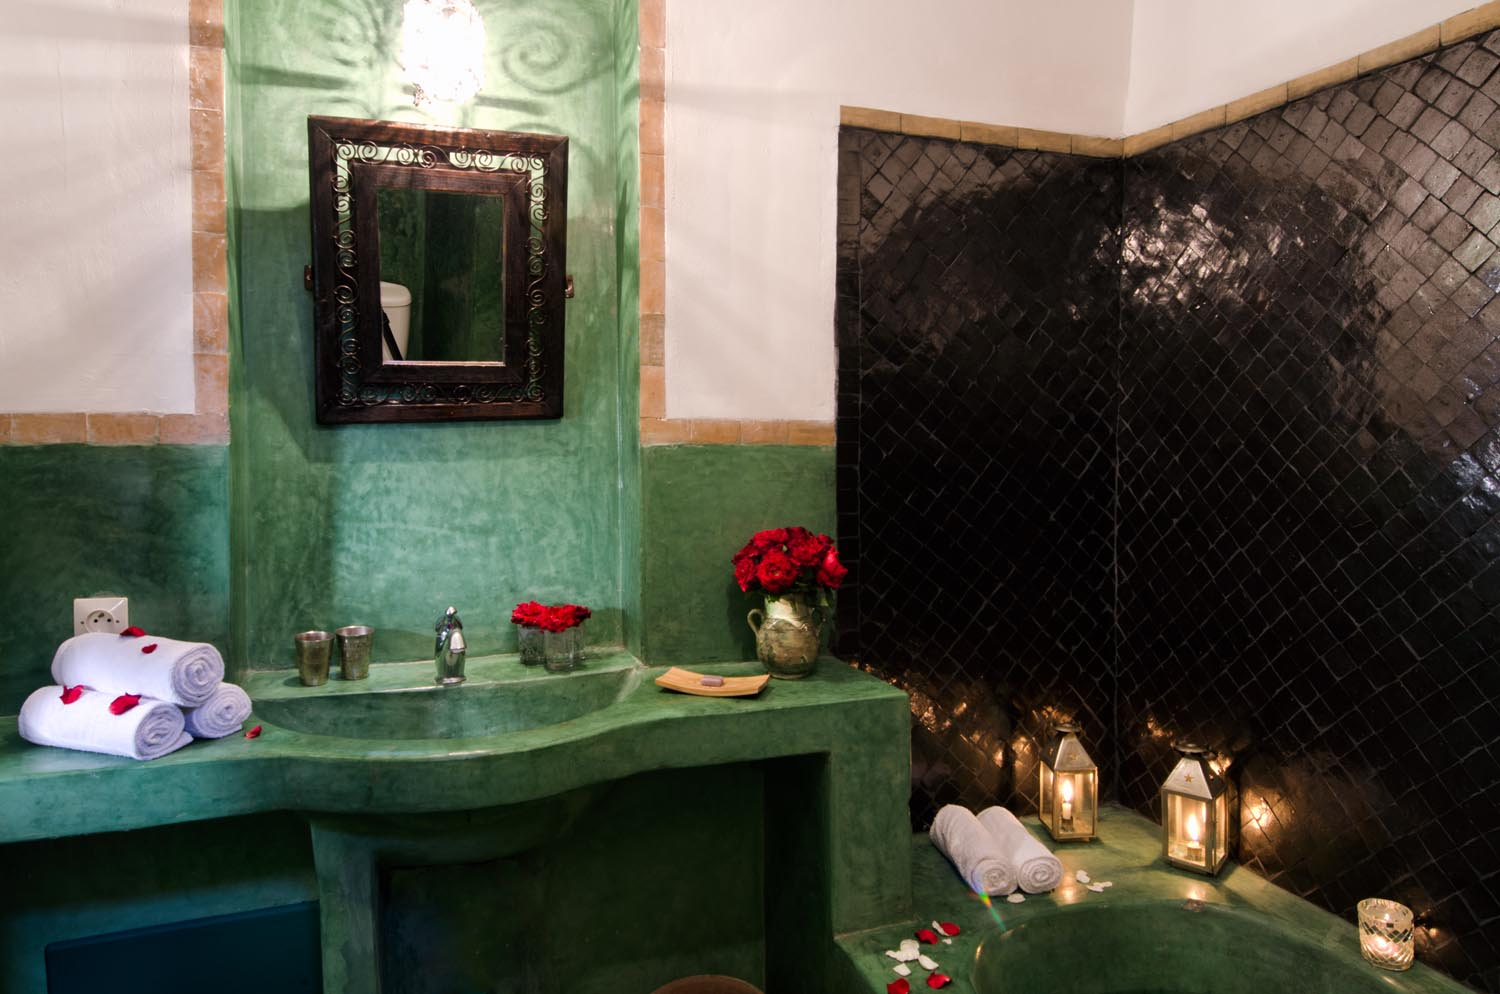 Riad Vert Location Book Riad Vert Today With Hip Morocco Holiday